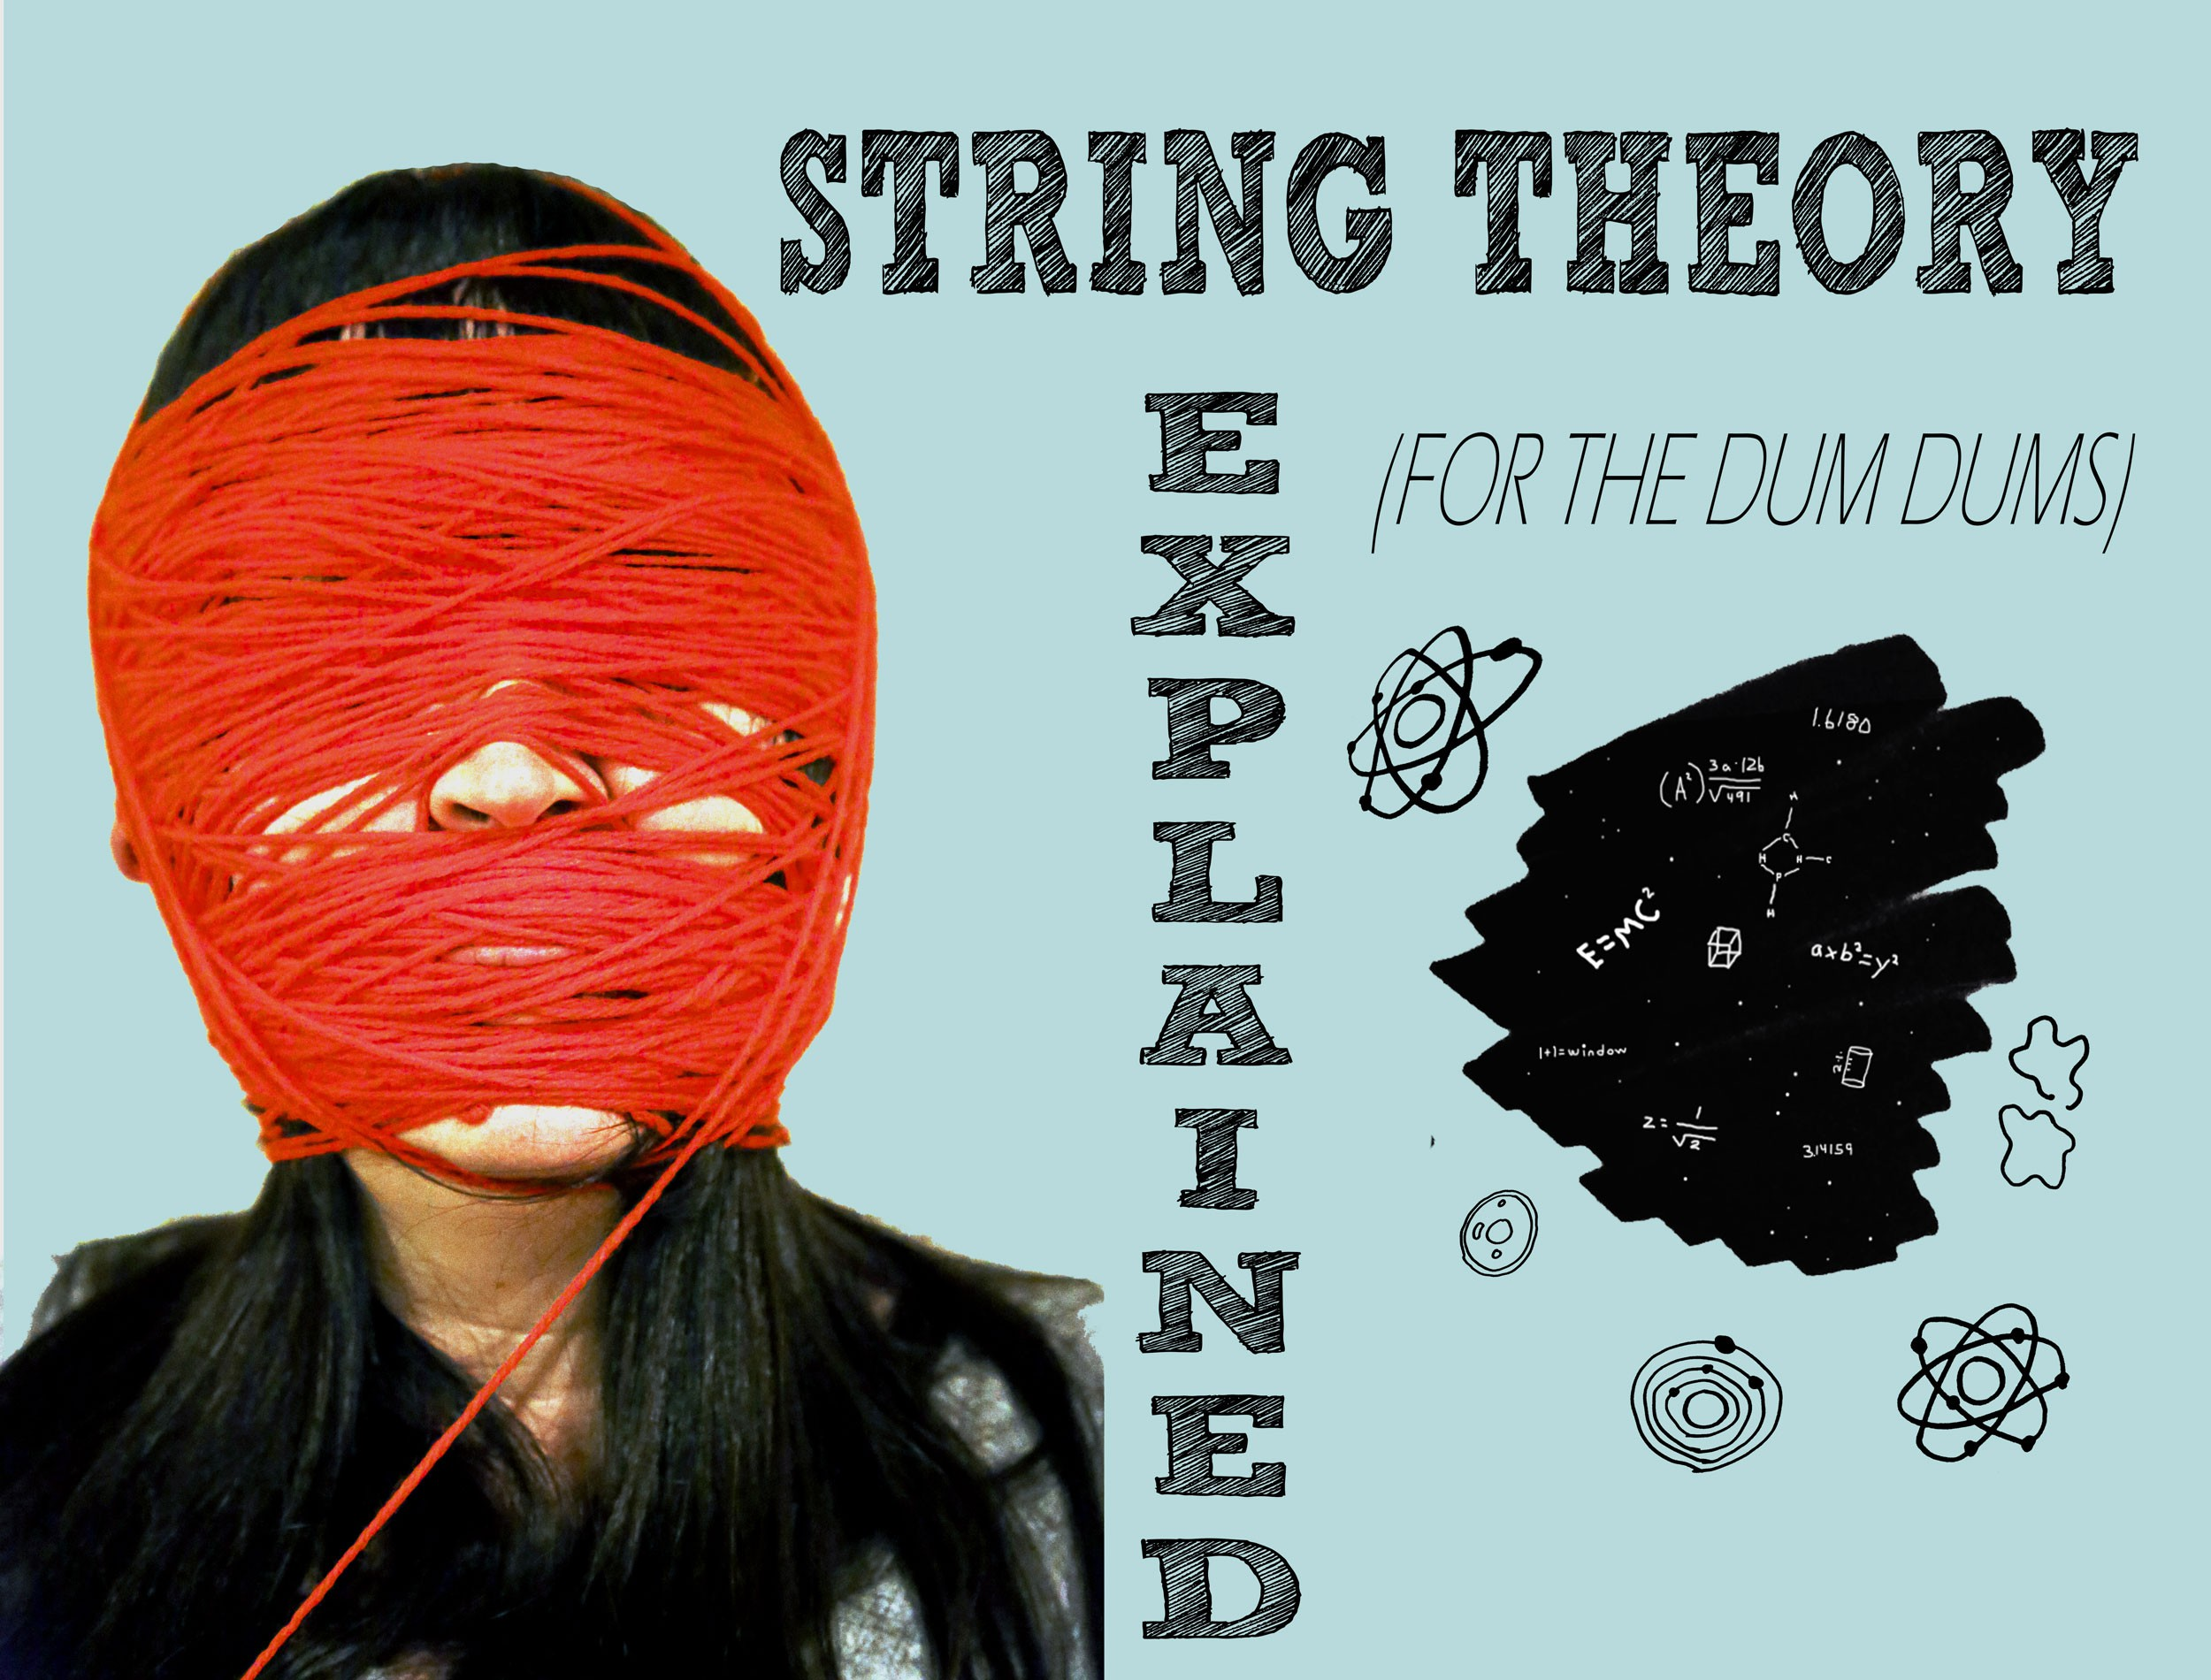 String Theory Explained (For Dum Dums)